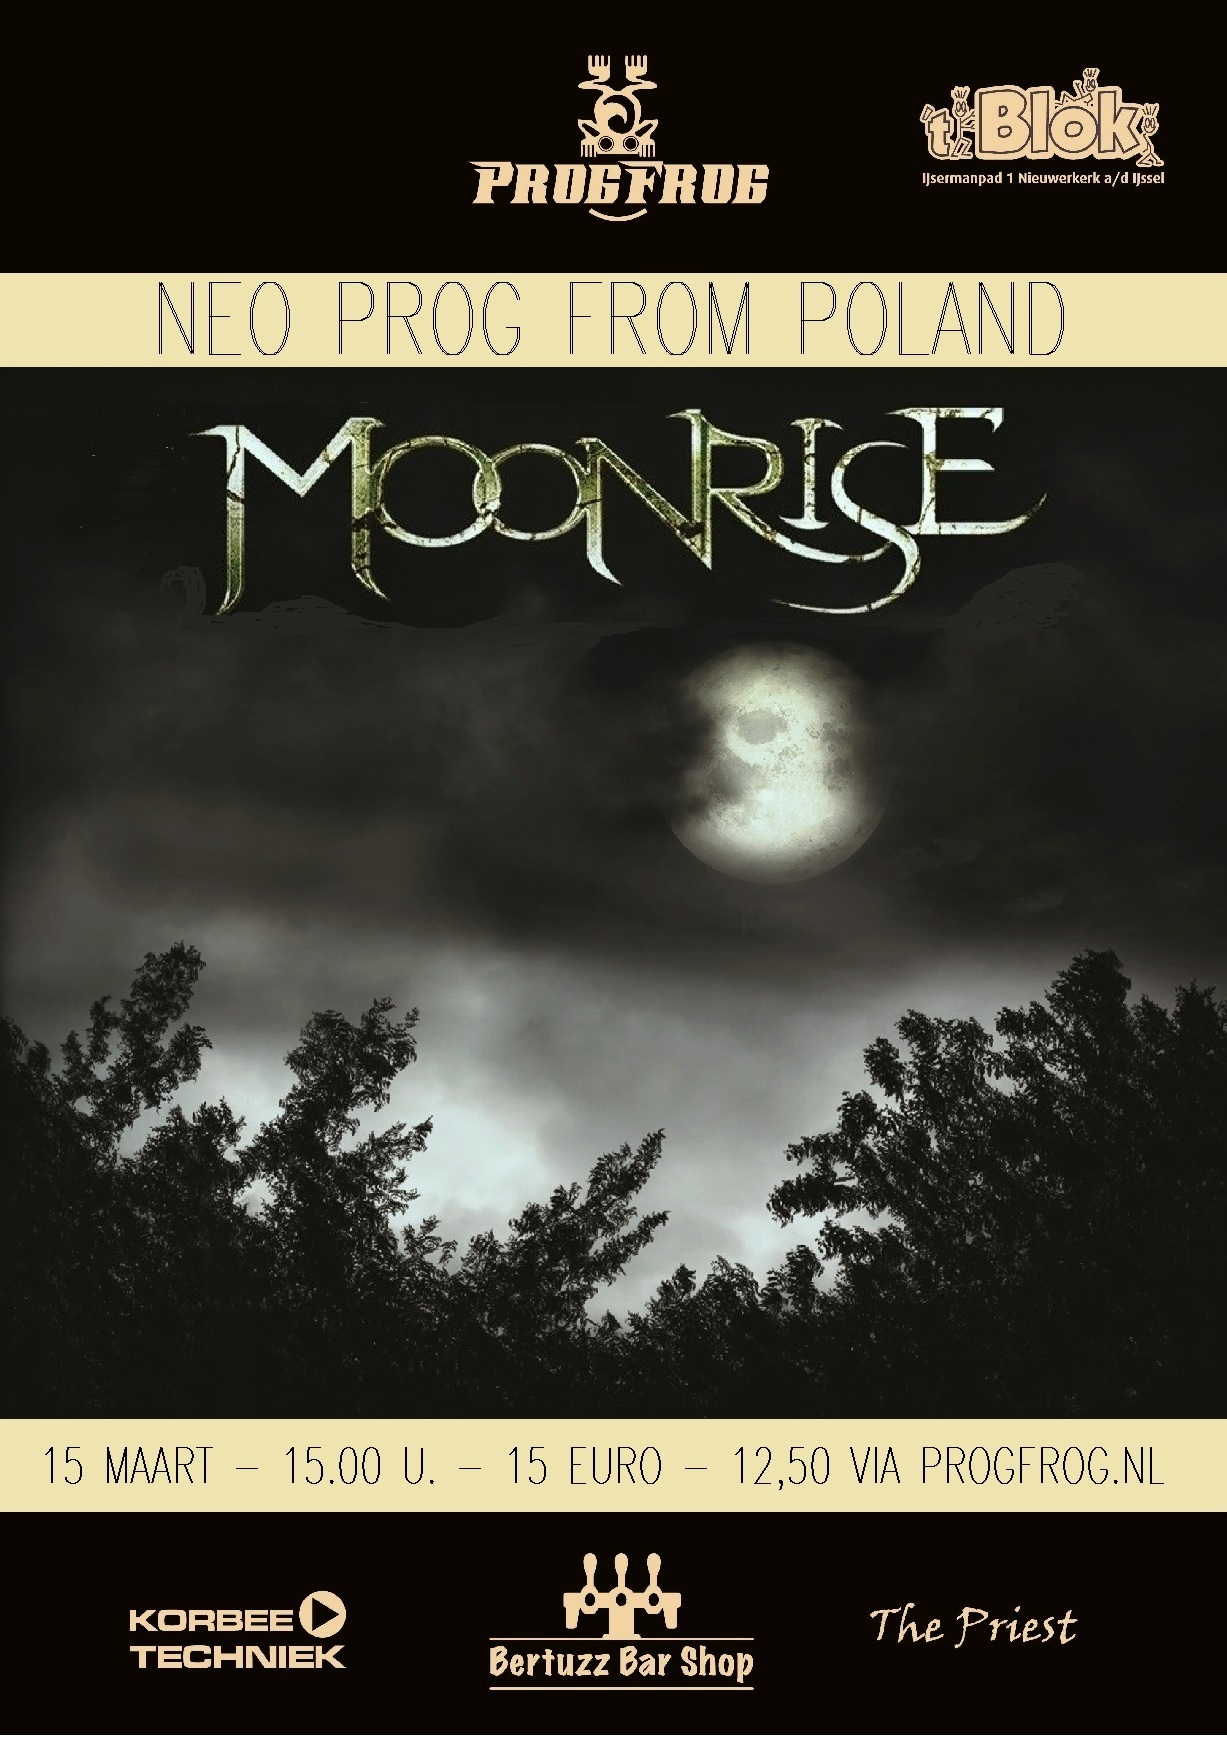 Moonrise (Poland)